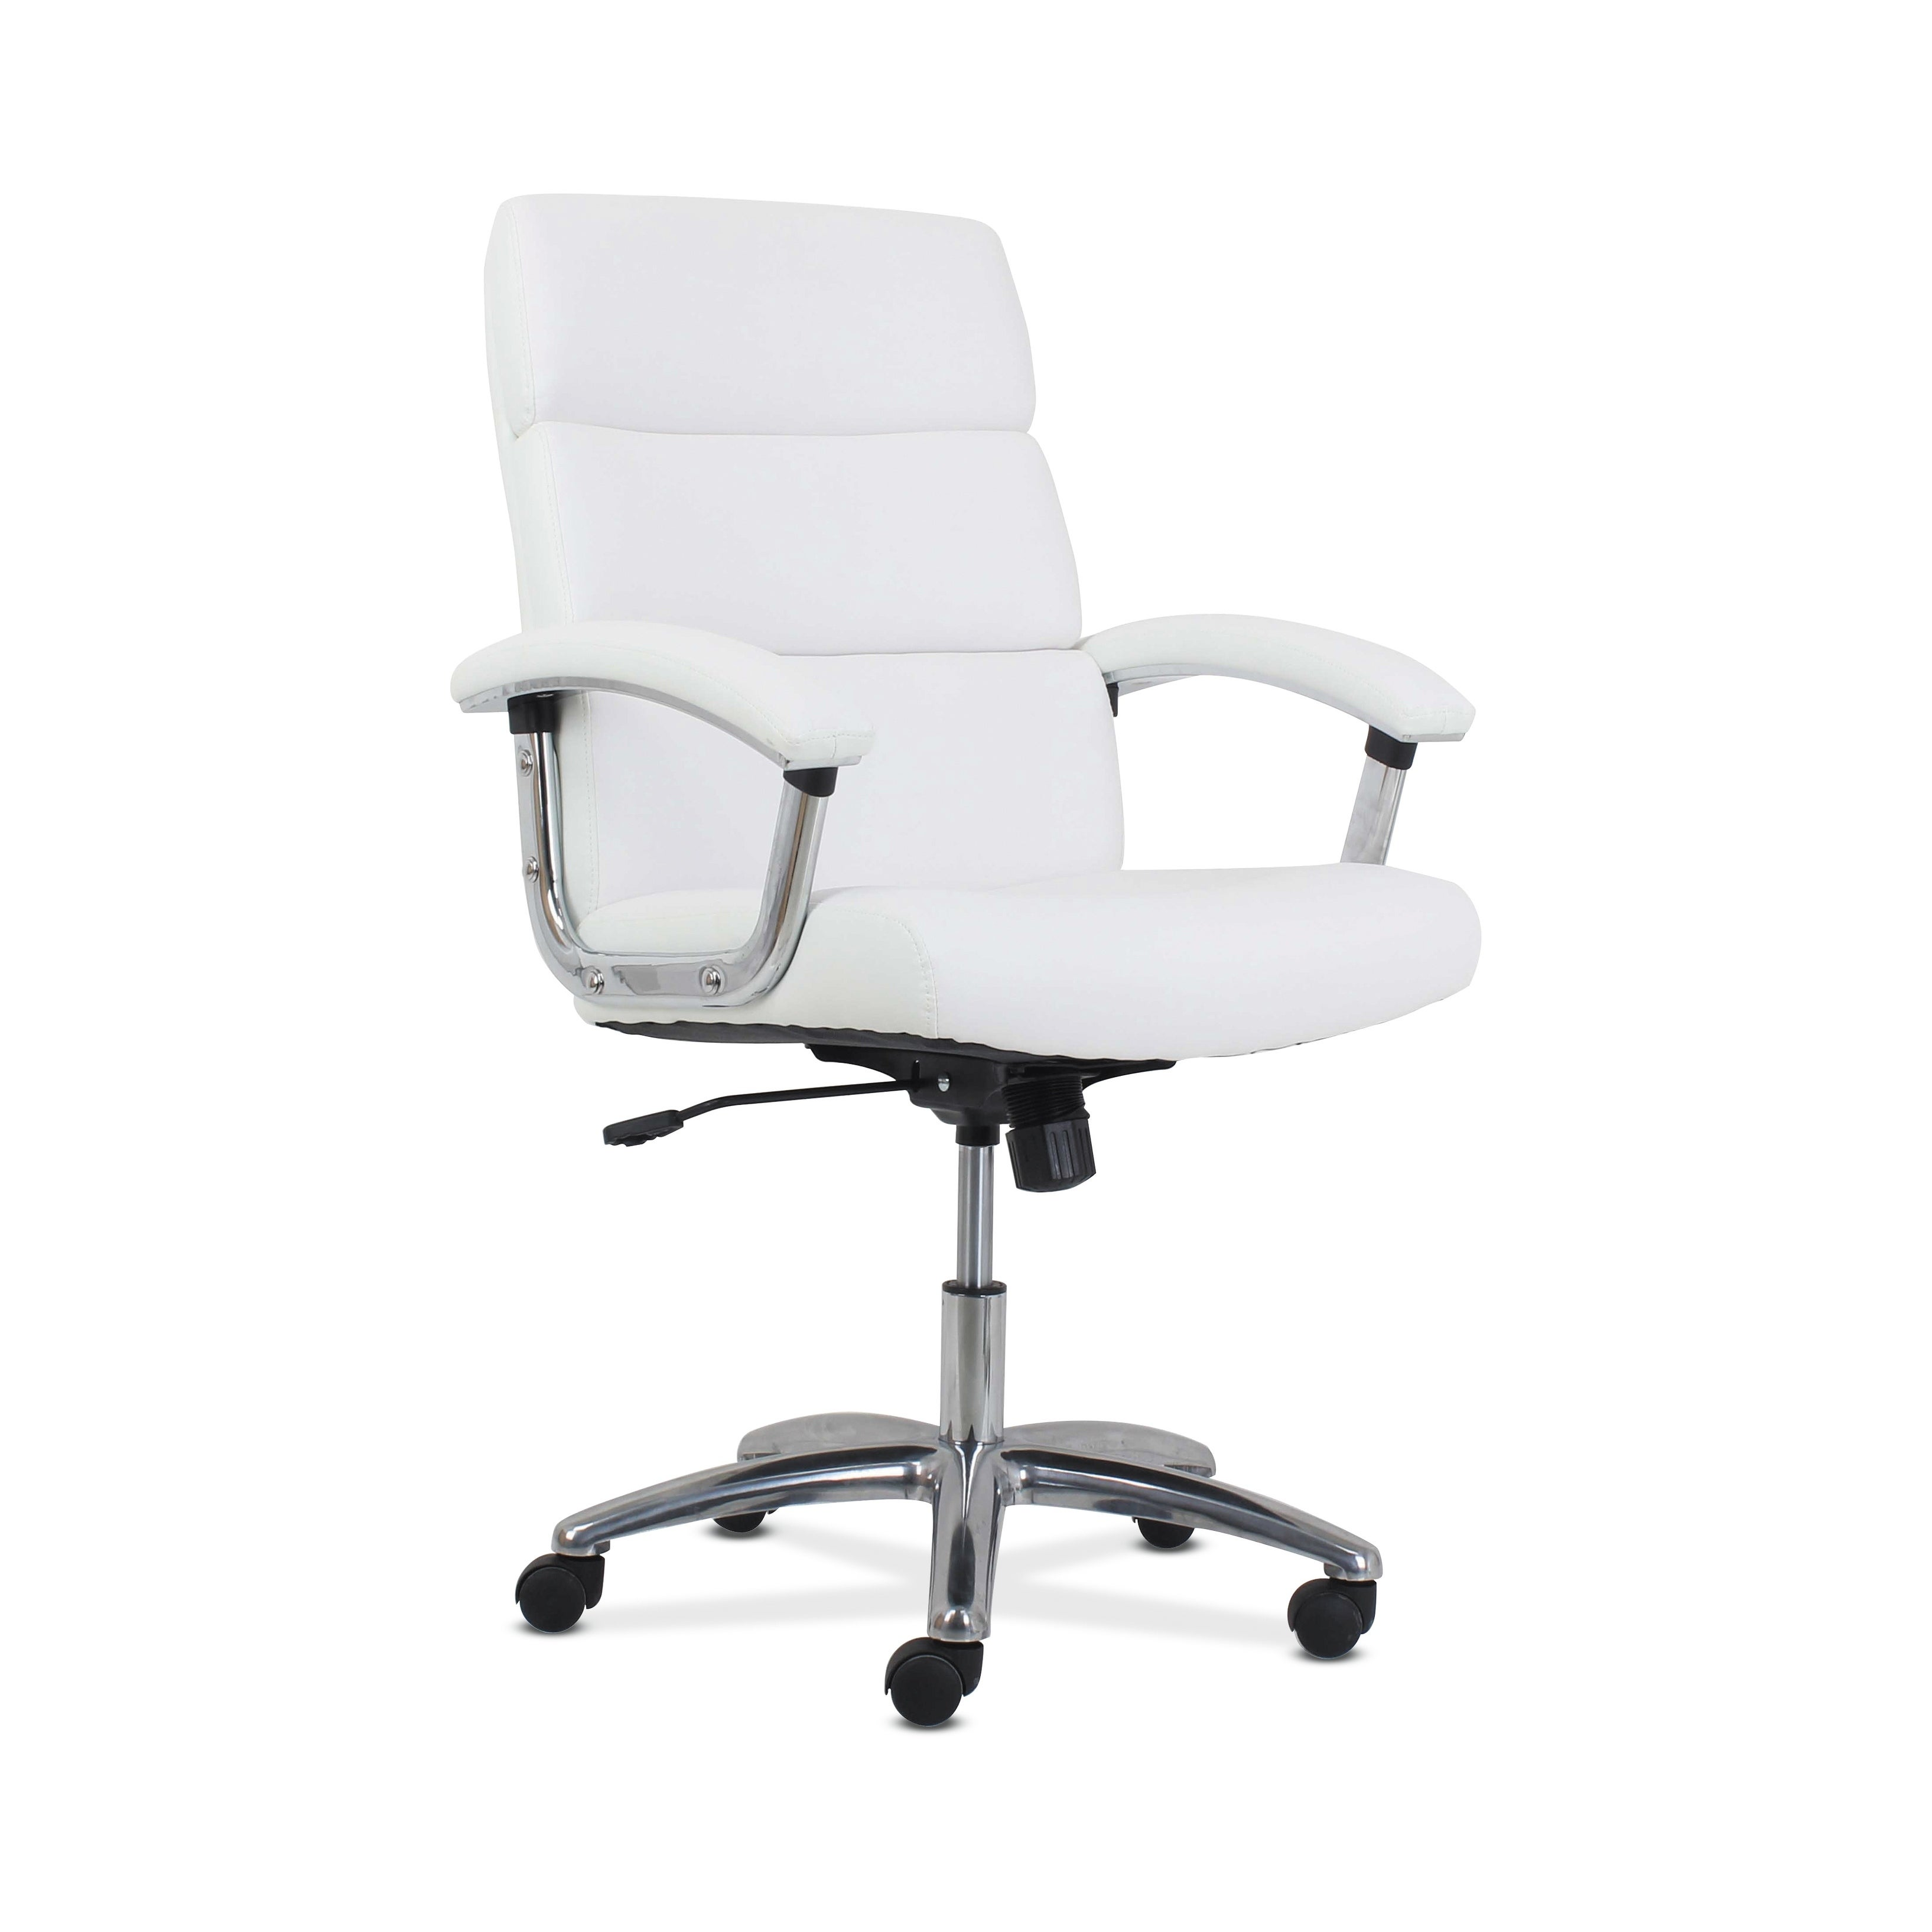 Hon Traction High Back Modern Leather Computer Chair White Honvl103 Overstock 23123358